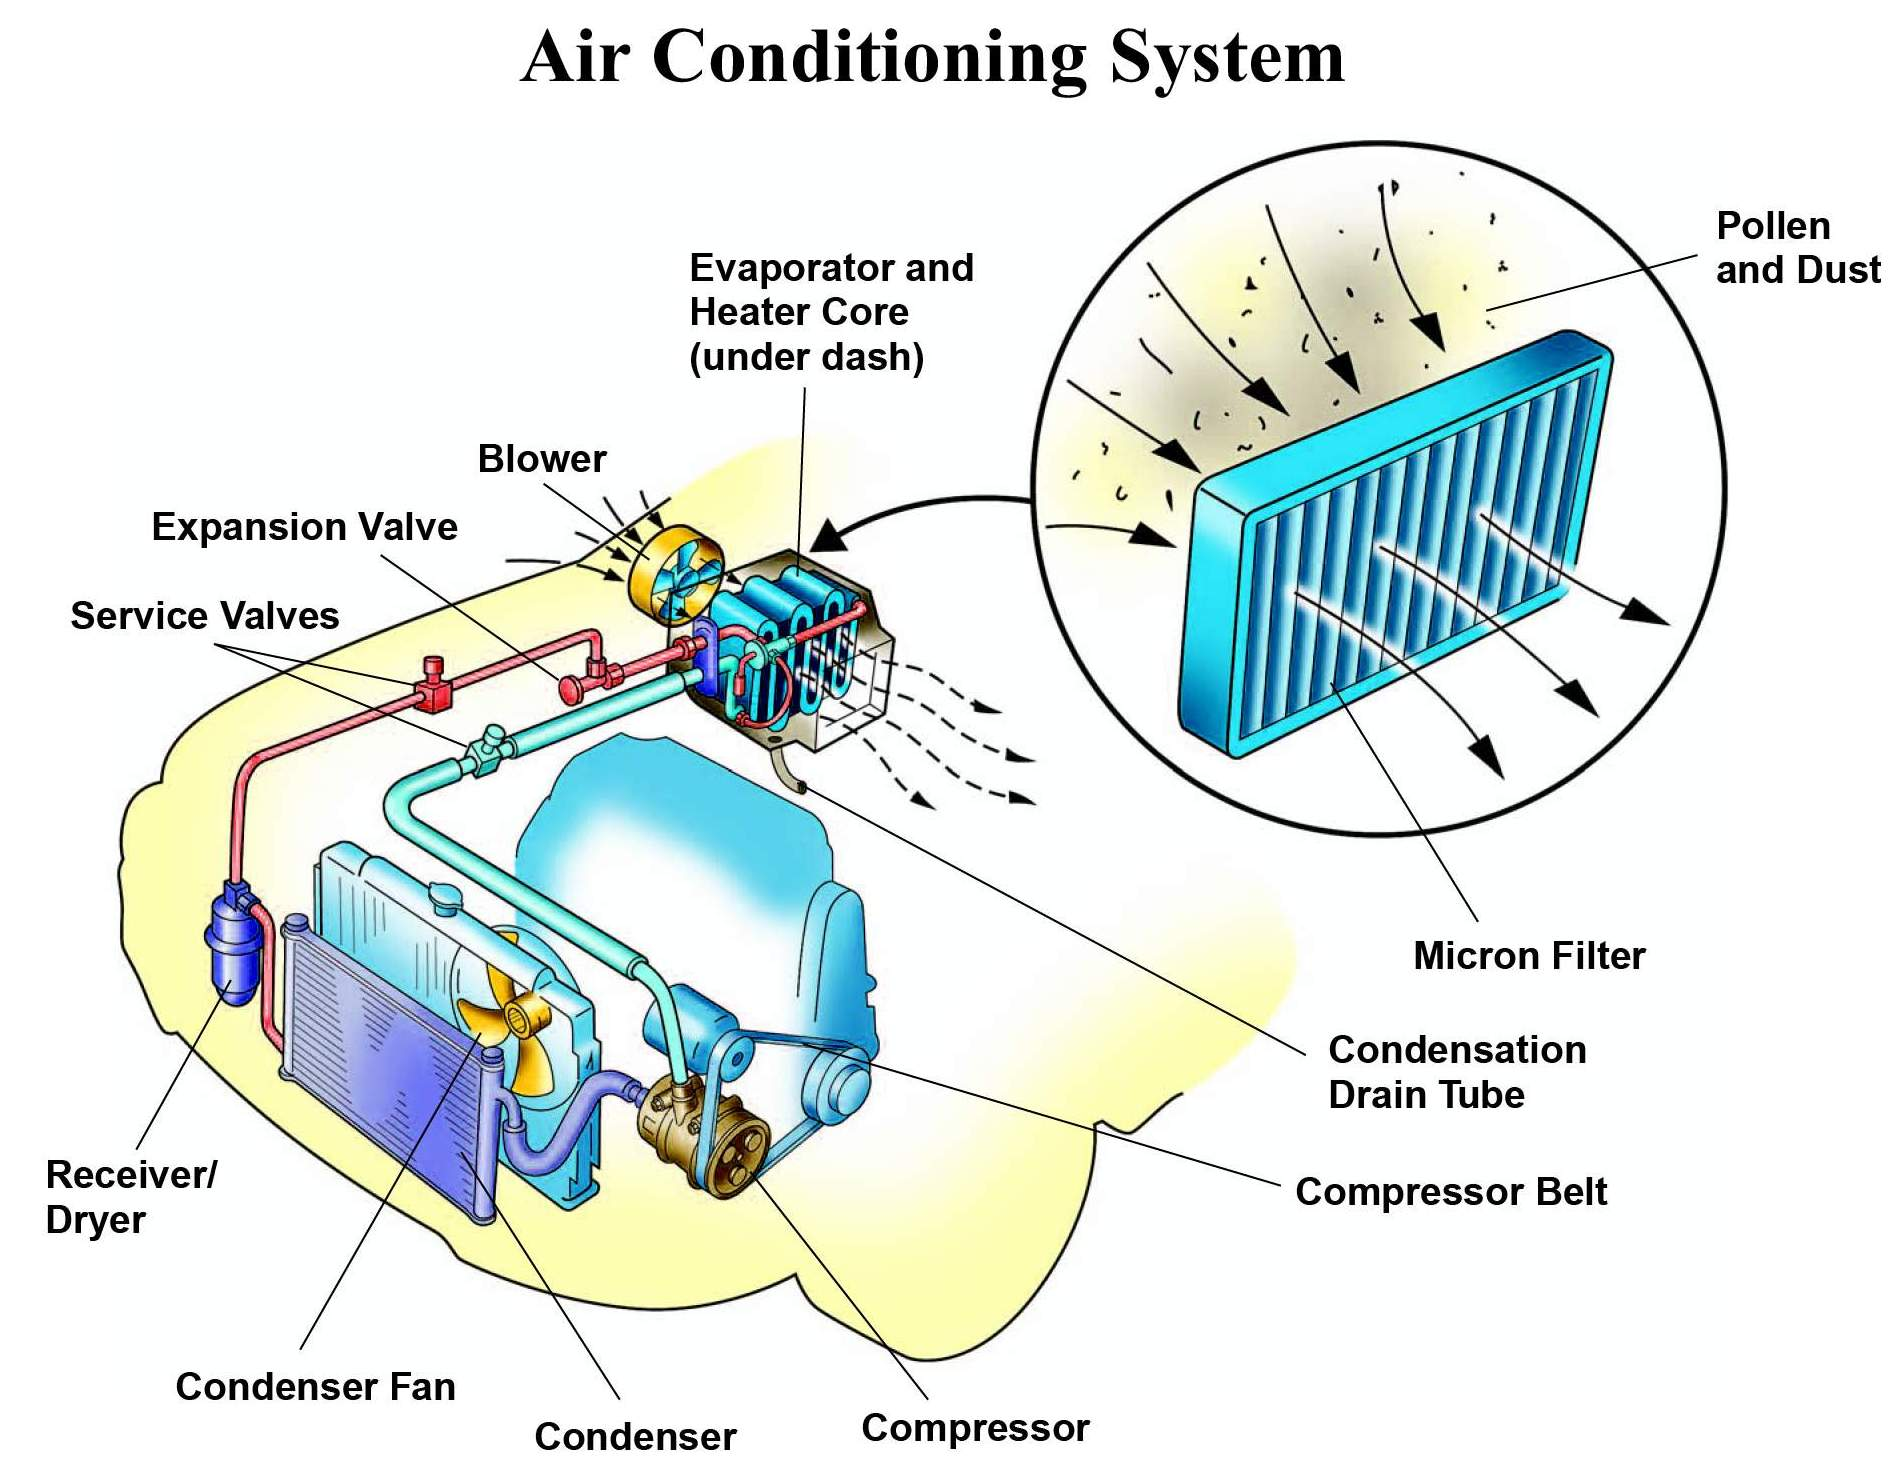 Car Air Conditioning System air conditioning rowleys tires  #16A4B5